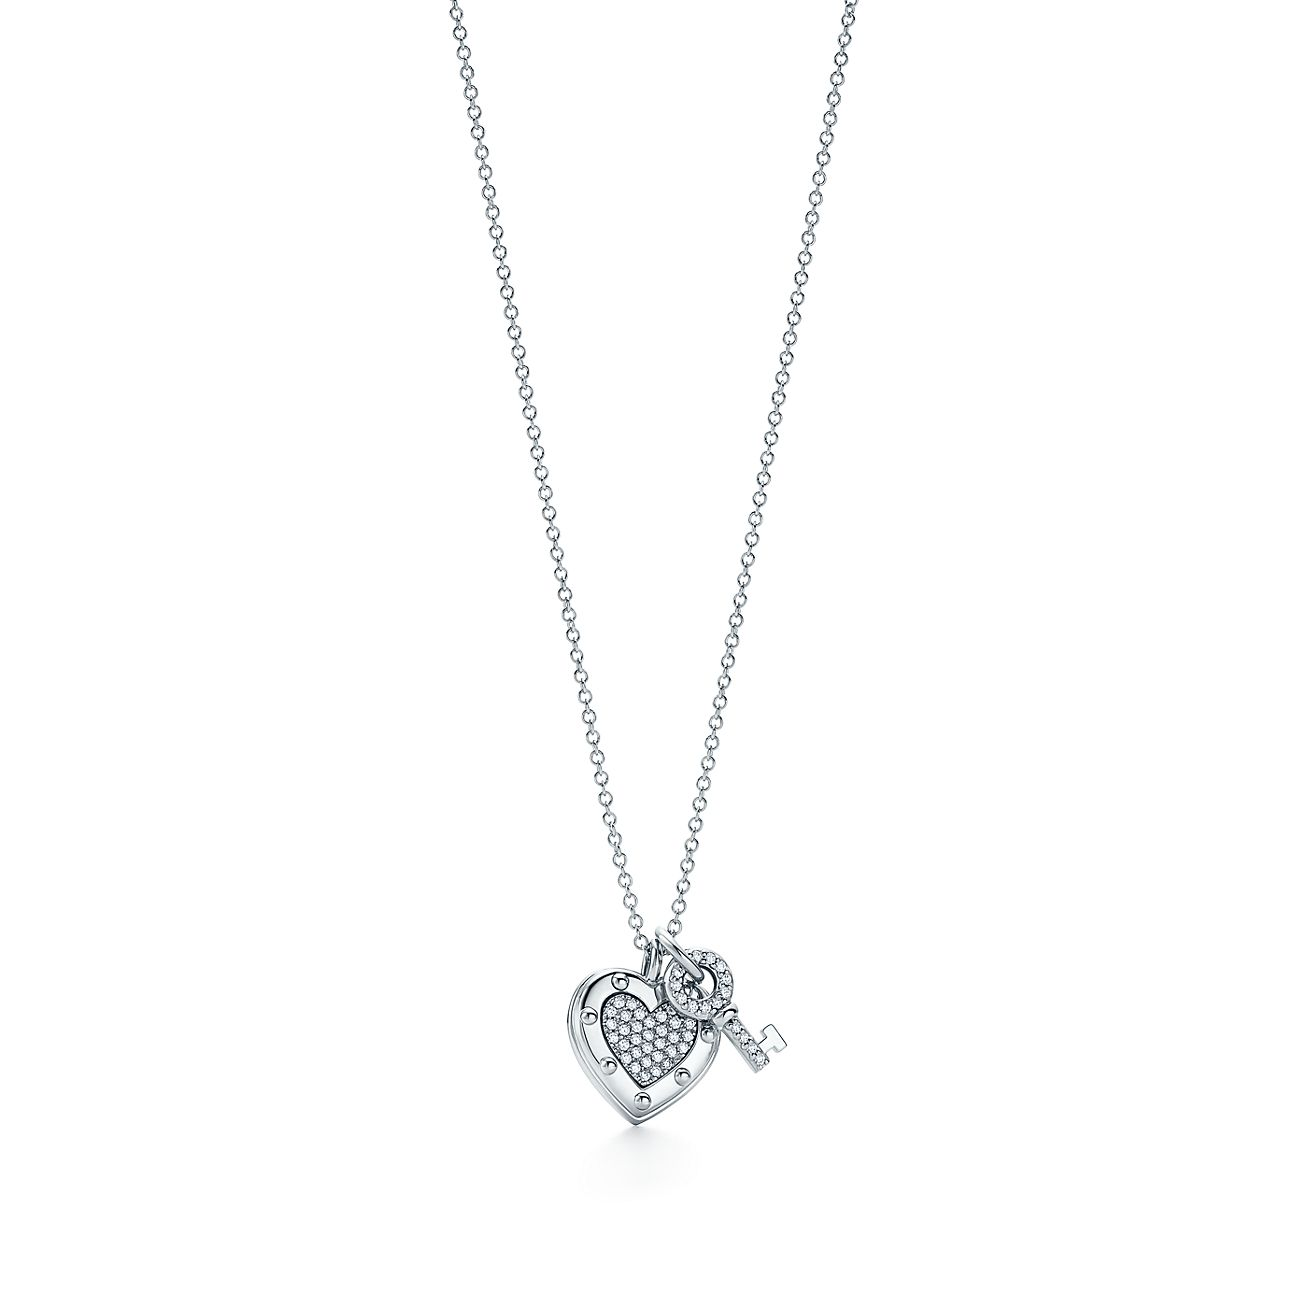 Return to tiffany love heart tag key pendant in 18k white gold with return to tiffanylove pendant aloadofball Images